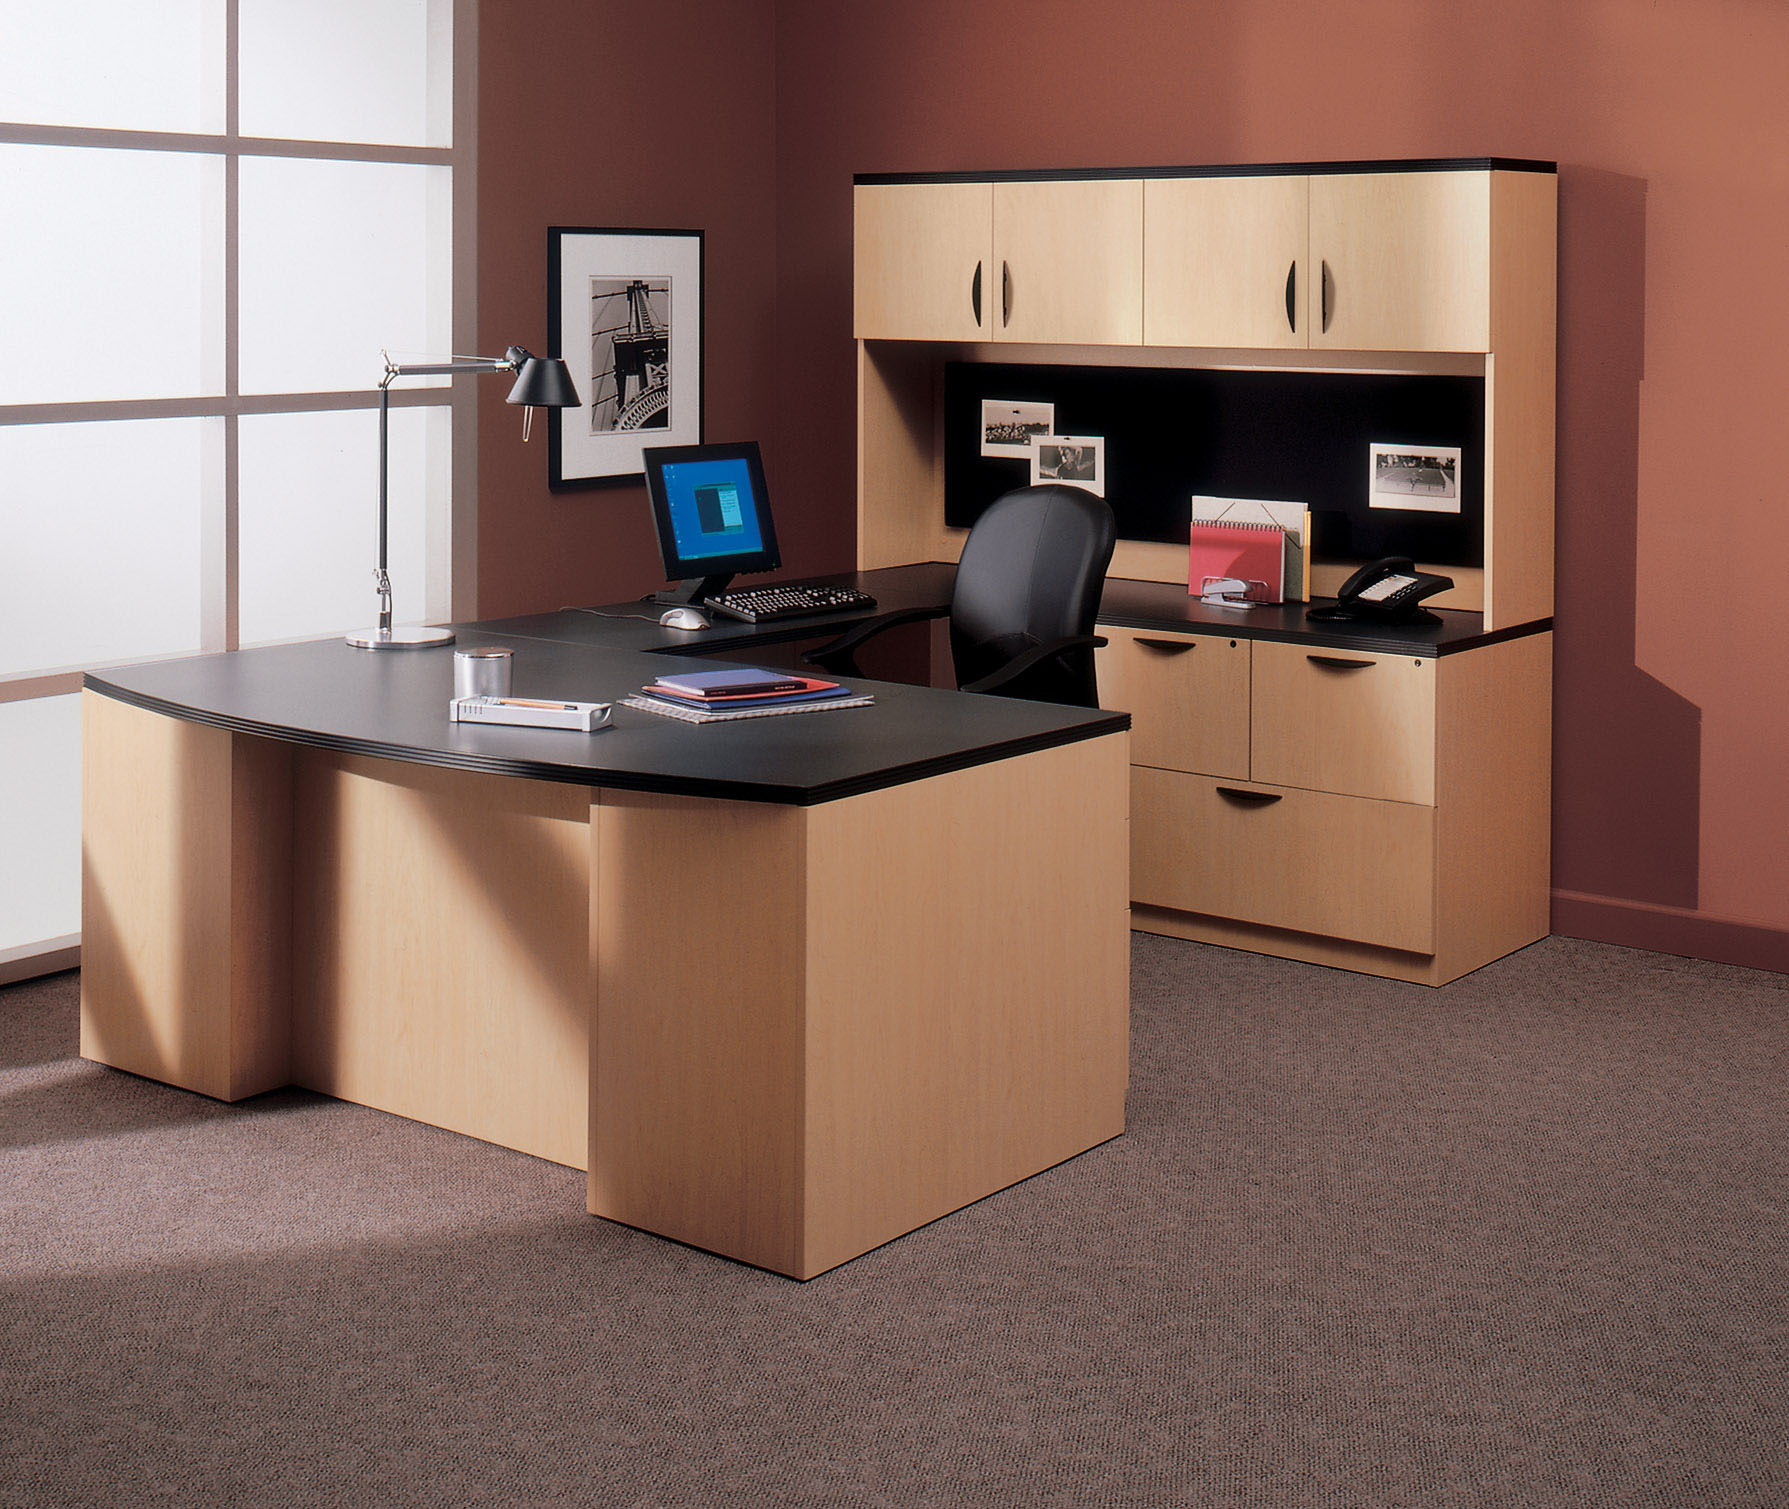 Office Furniture Images Gallery office furniture - ga blanco & sons inc